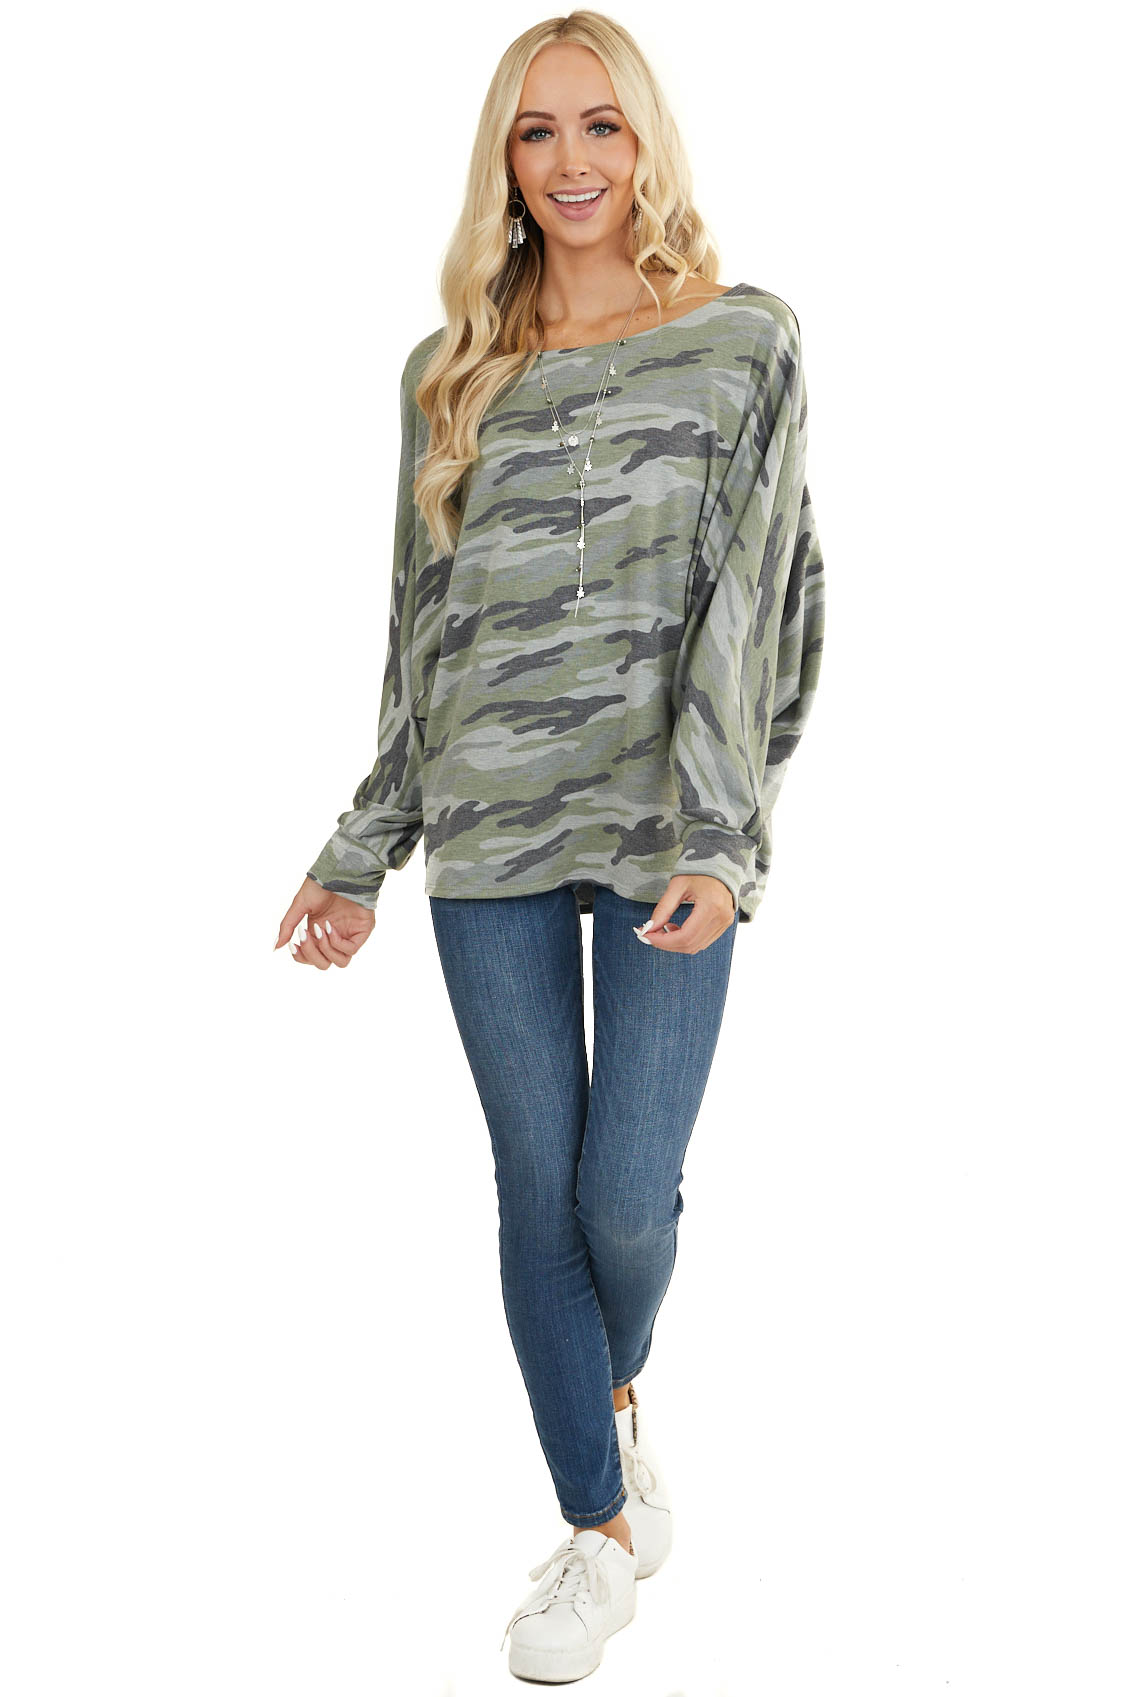 Sage and Grey Camo Knit Top with Long Dolman Sleeves